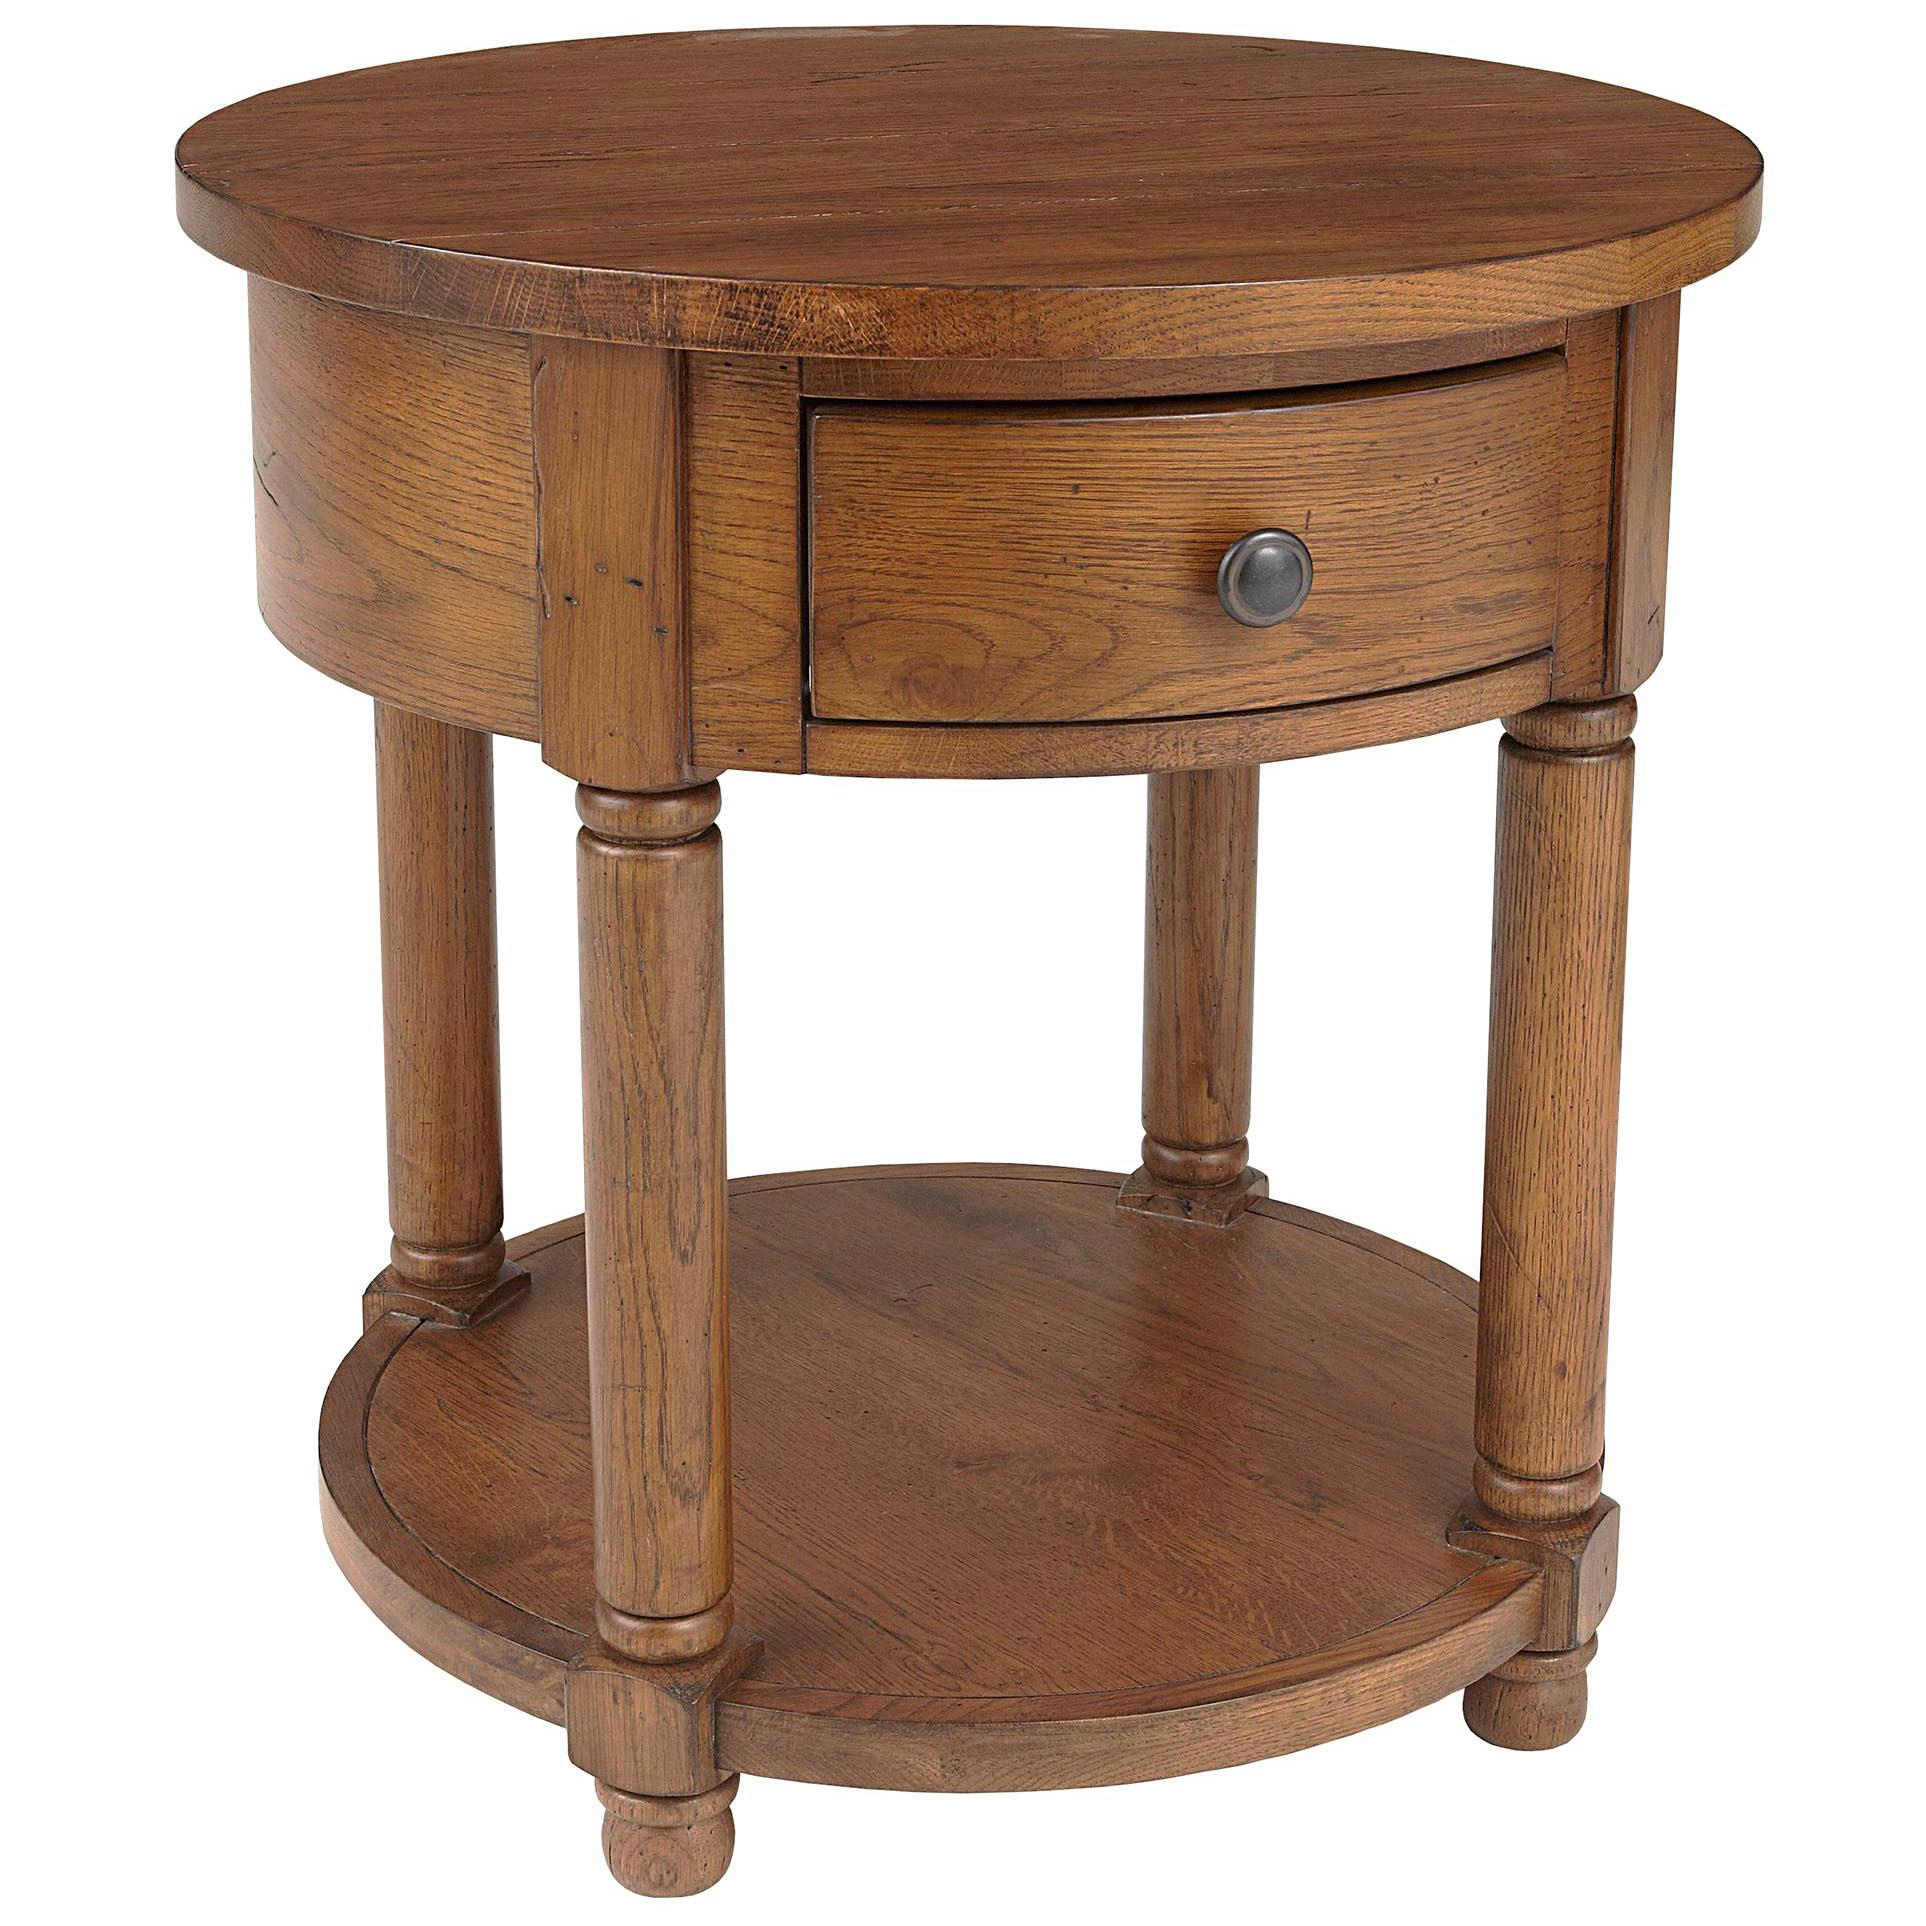 Broyhill furniture attic heirlooms round end table with for Furniture for attics